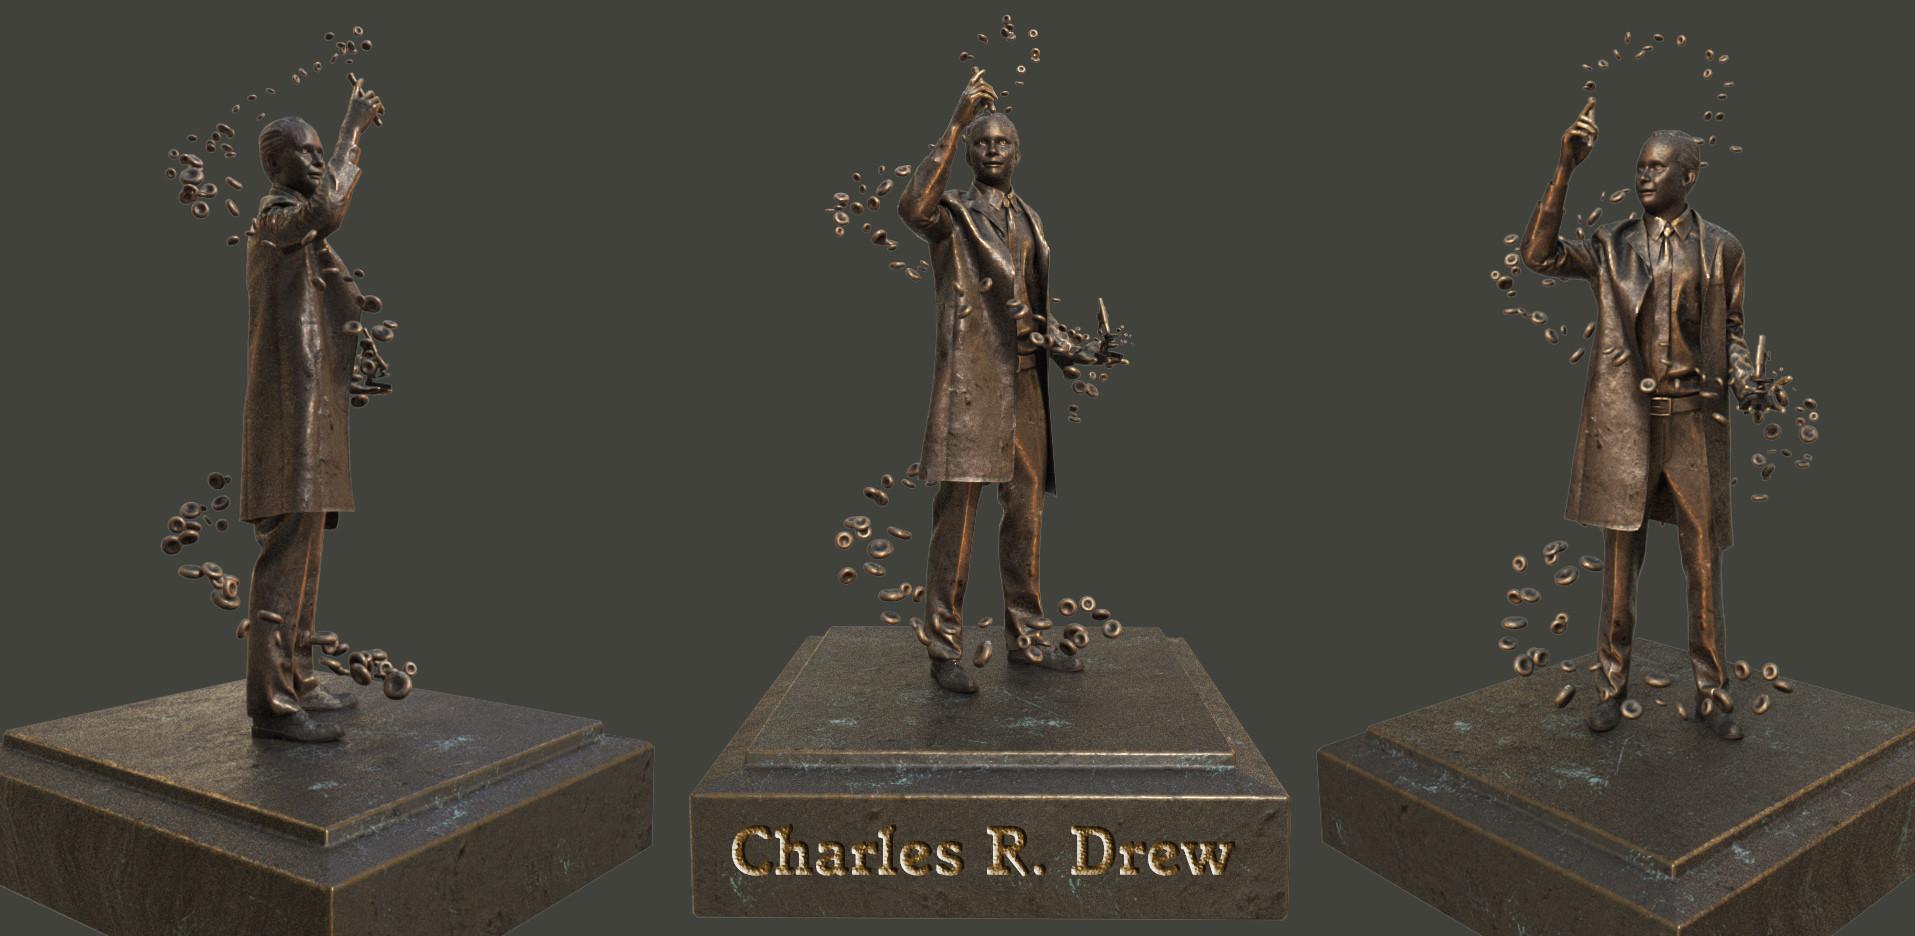 Charles Drew, physician & pioneer of blood preservation methods.